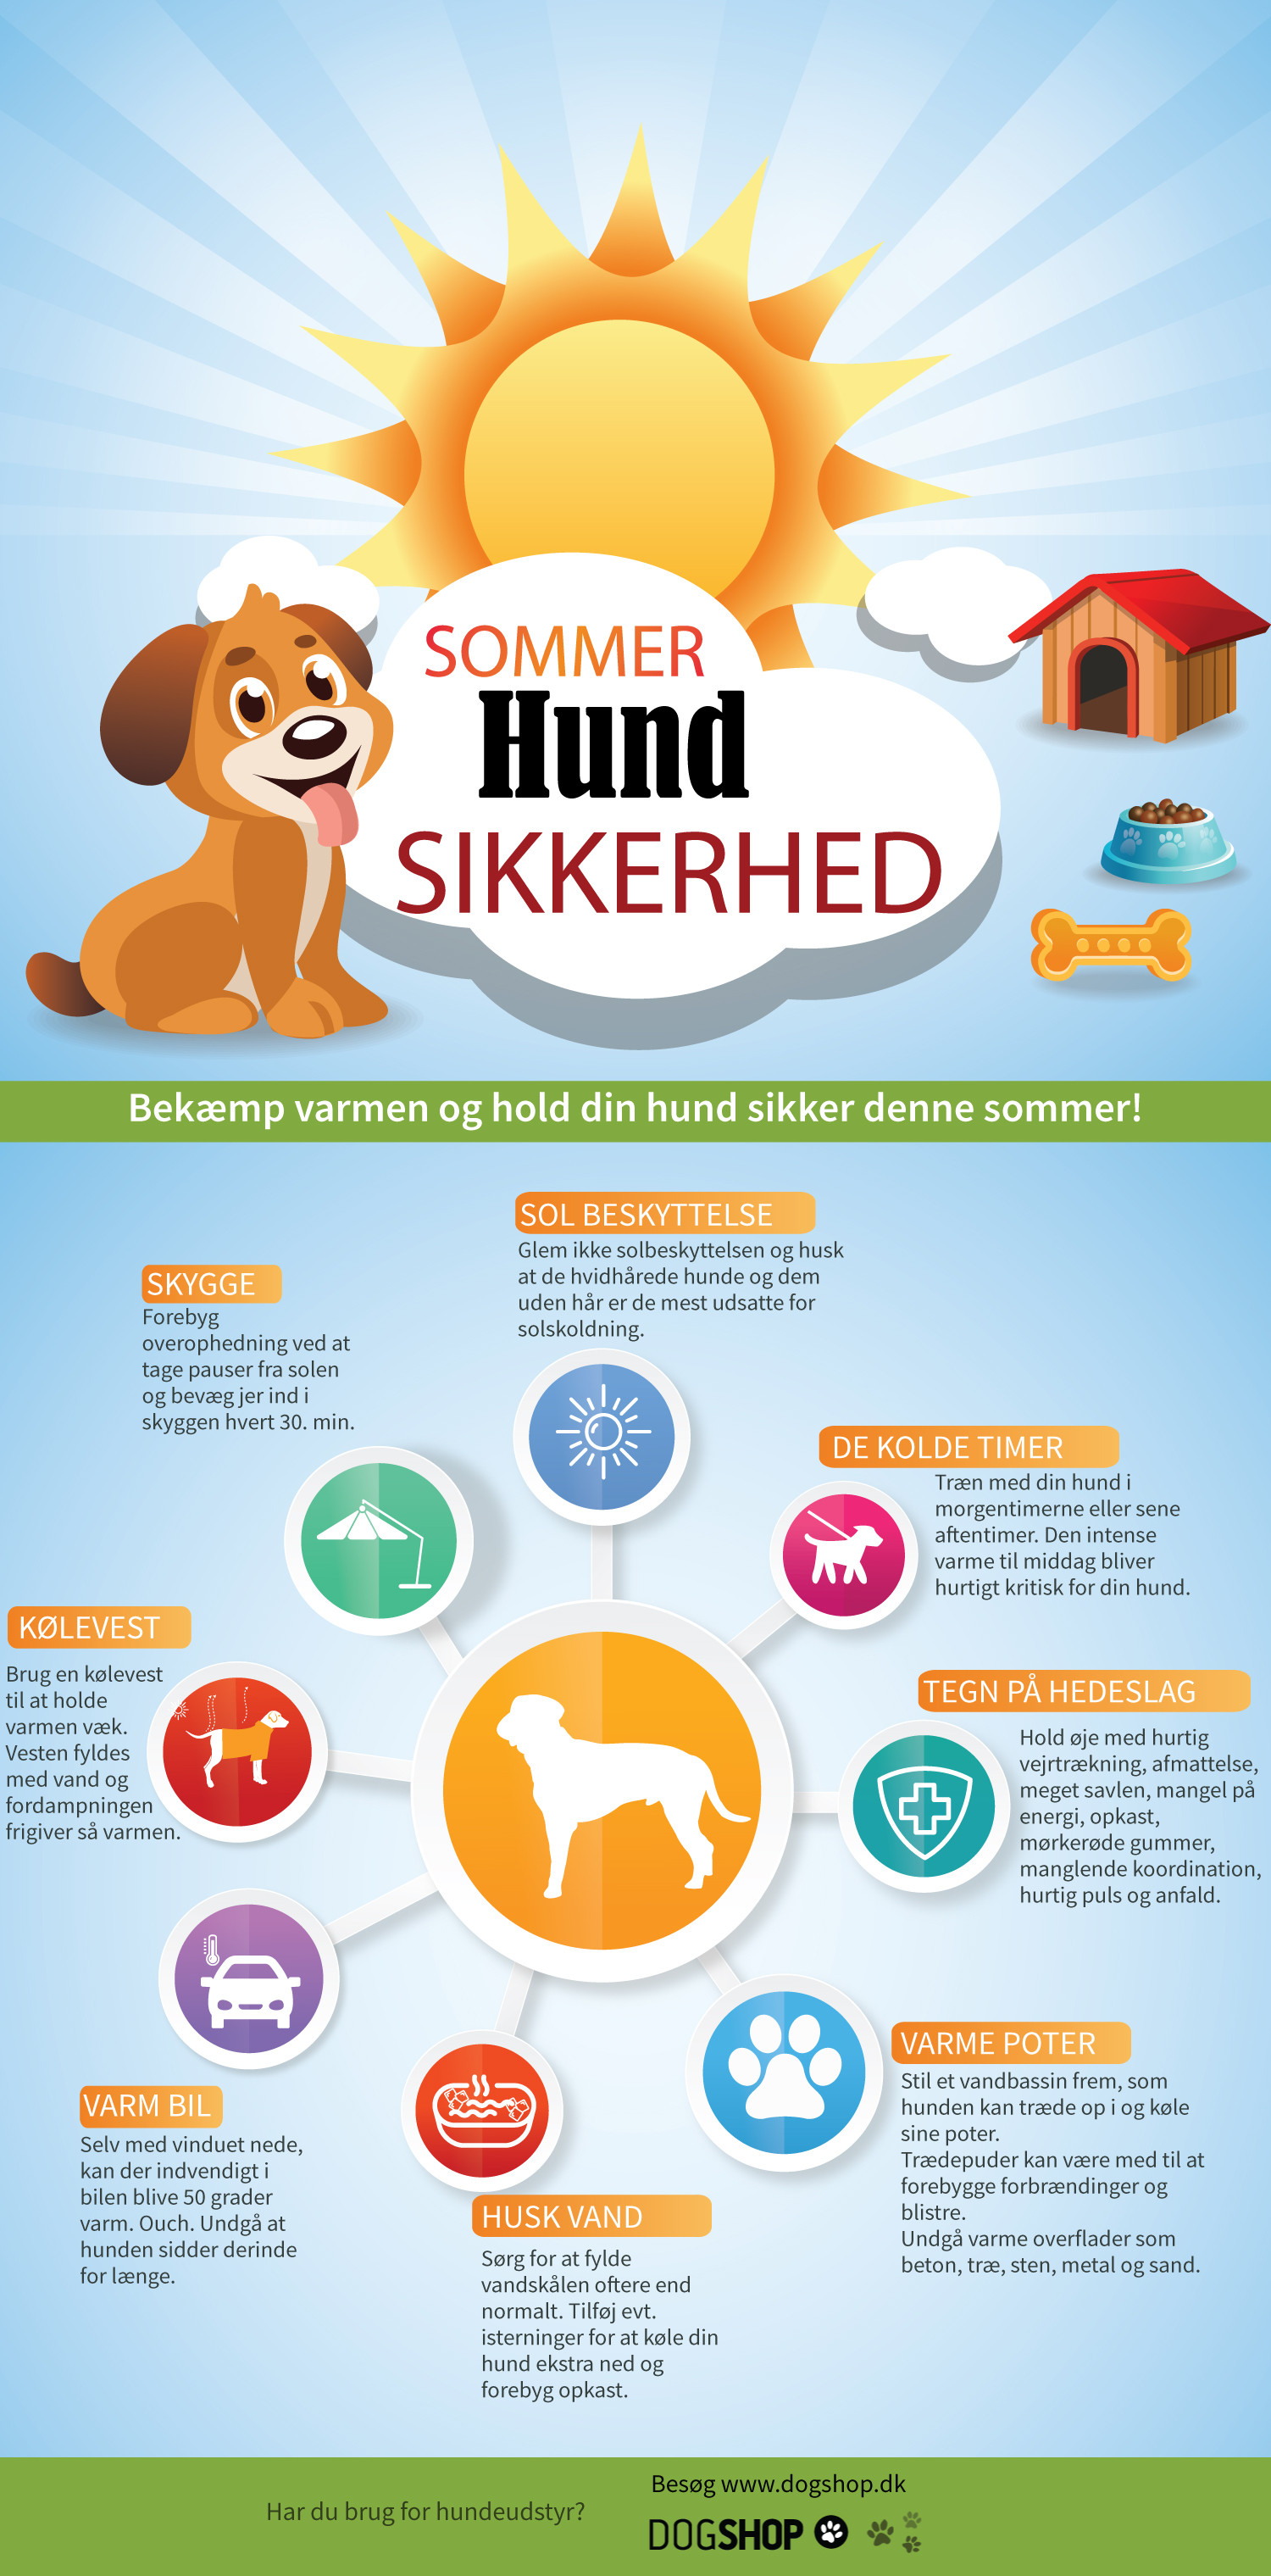 Taking care of your dog in the heat Infographic